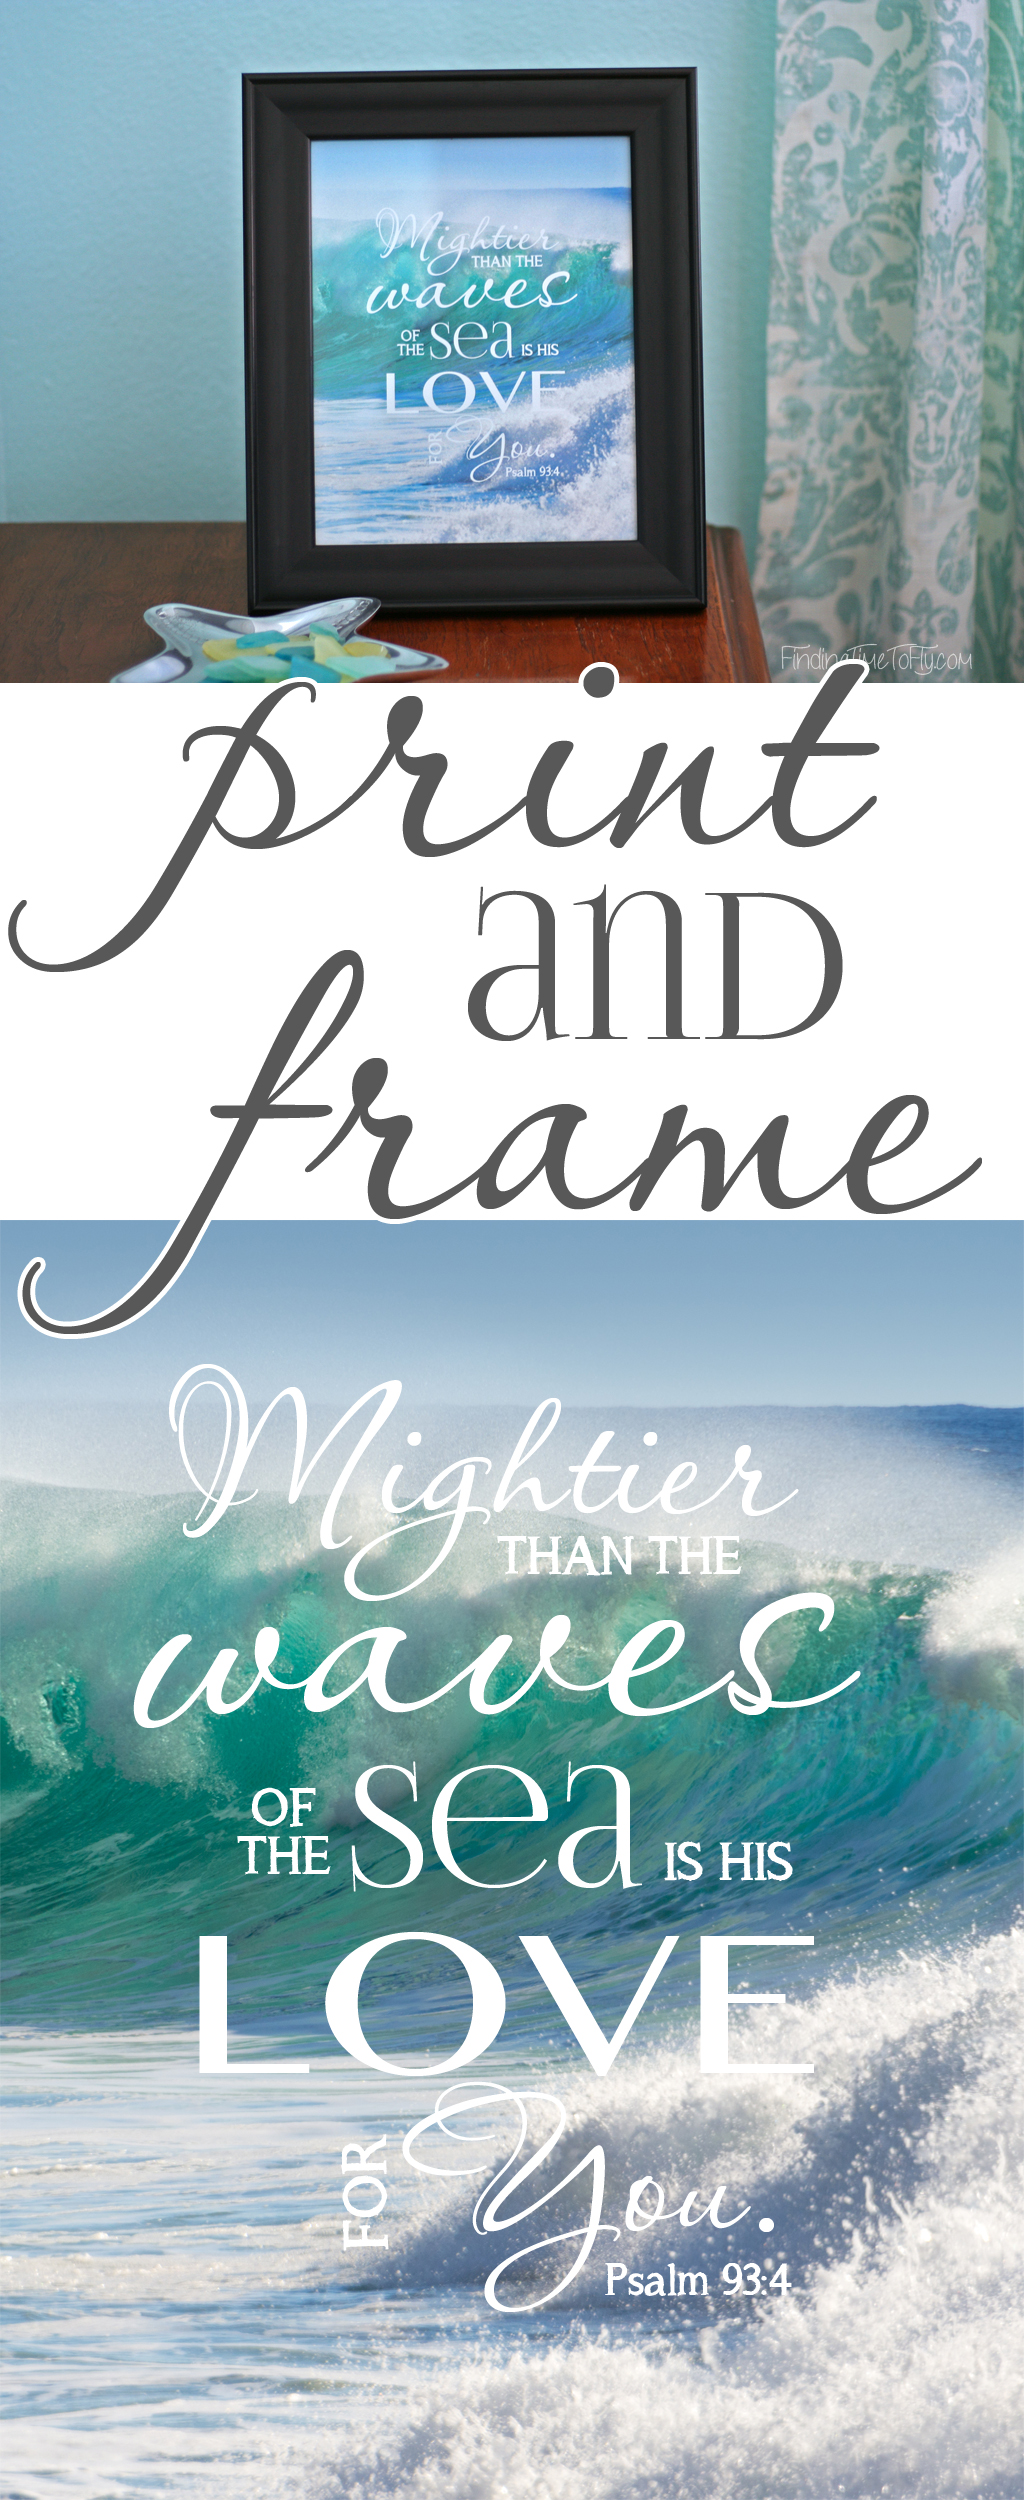 Love the colors in this print of one of my favorite verses, Psalm 93:4. Mightier than the waves of the sea is his love for you.